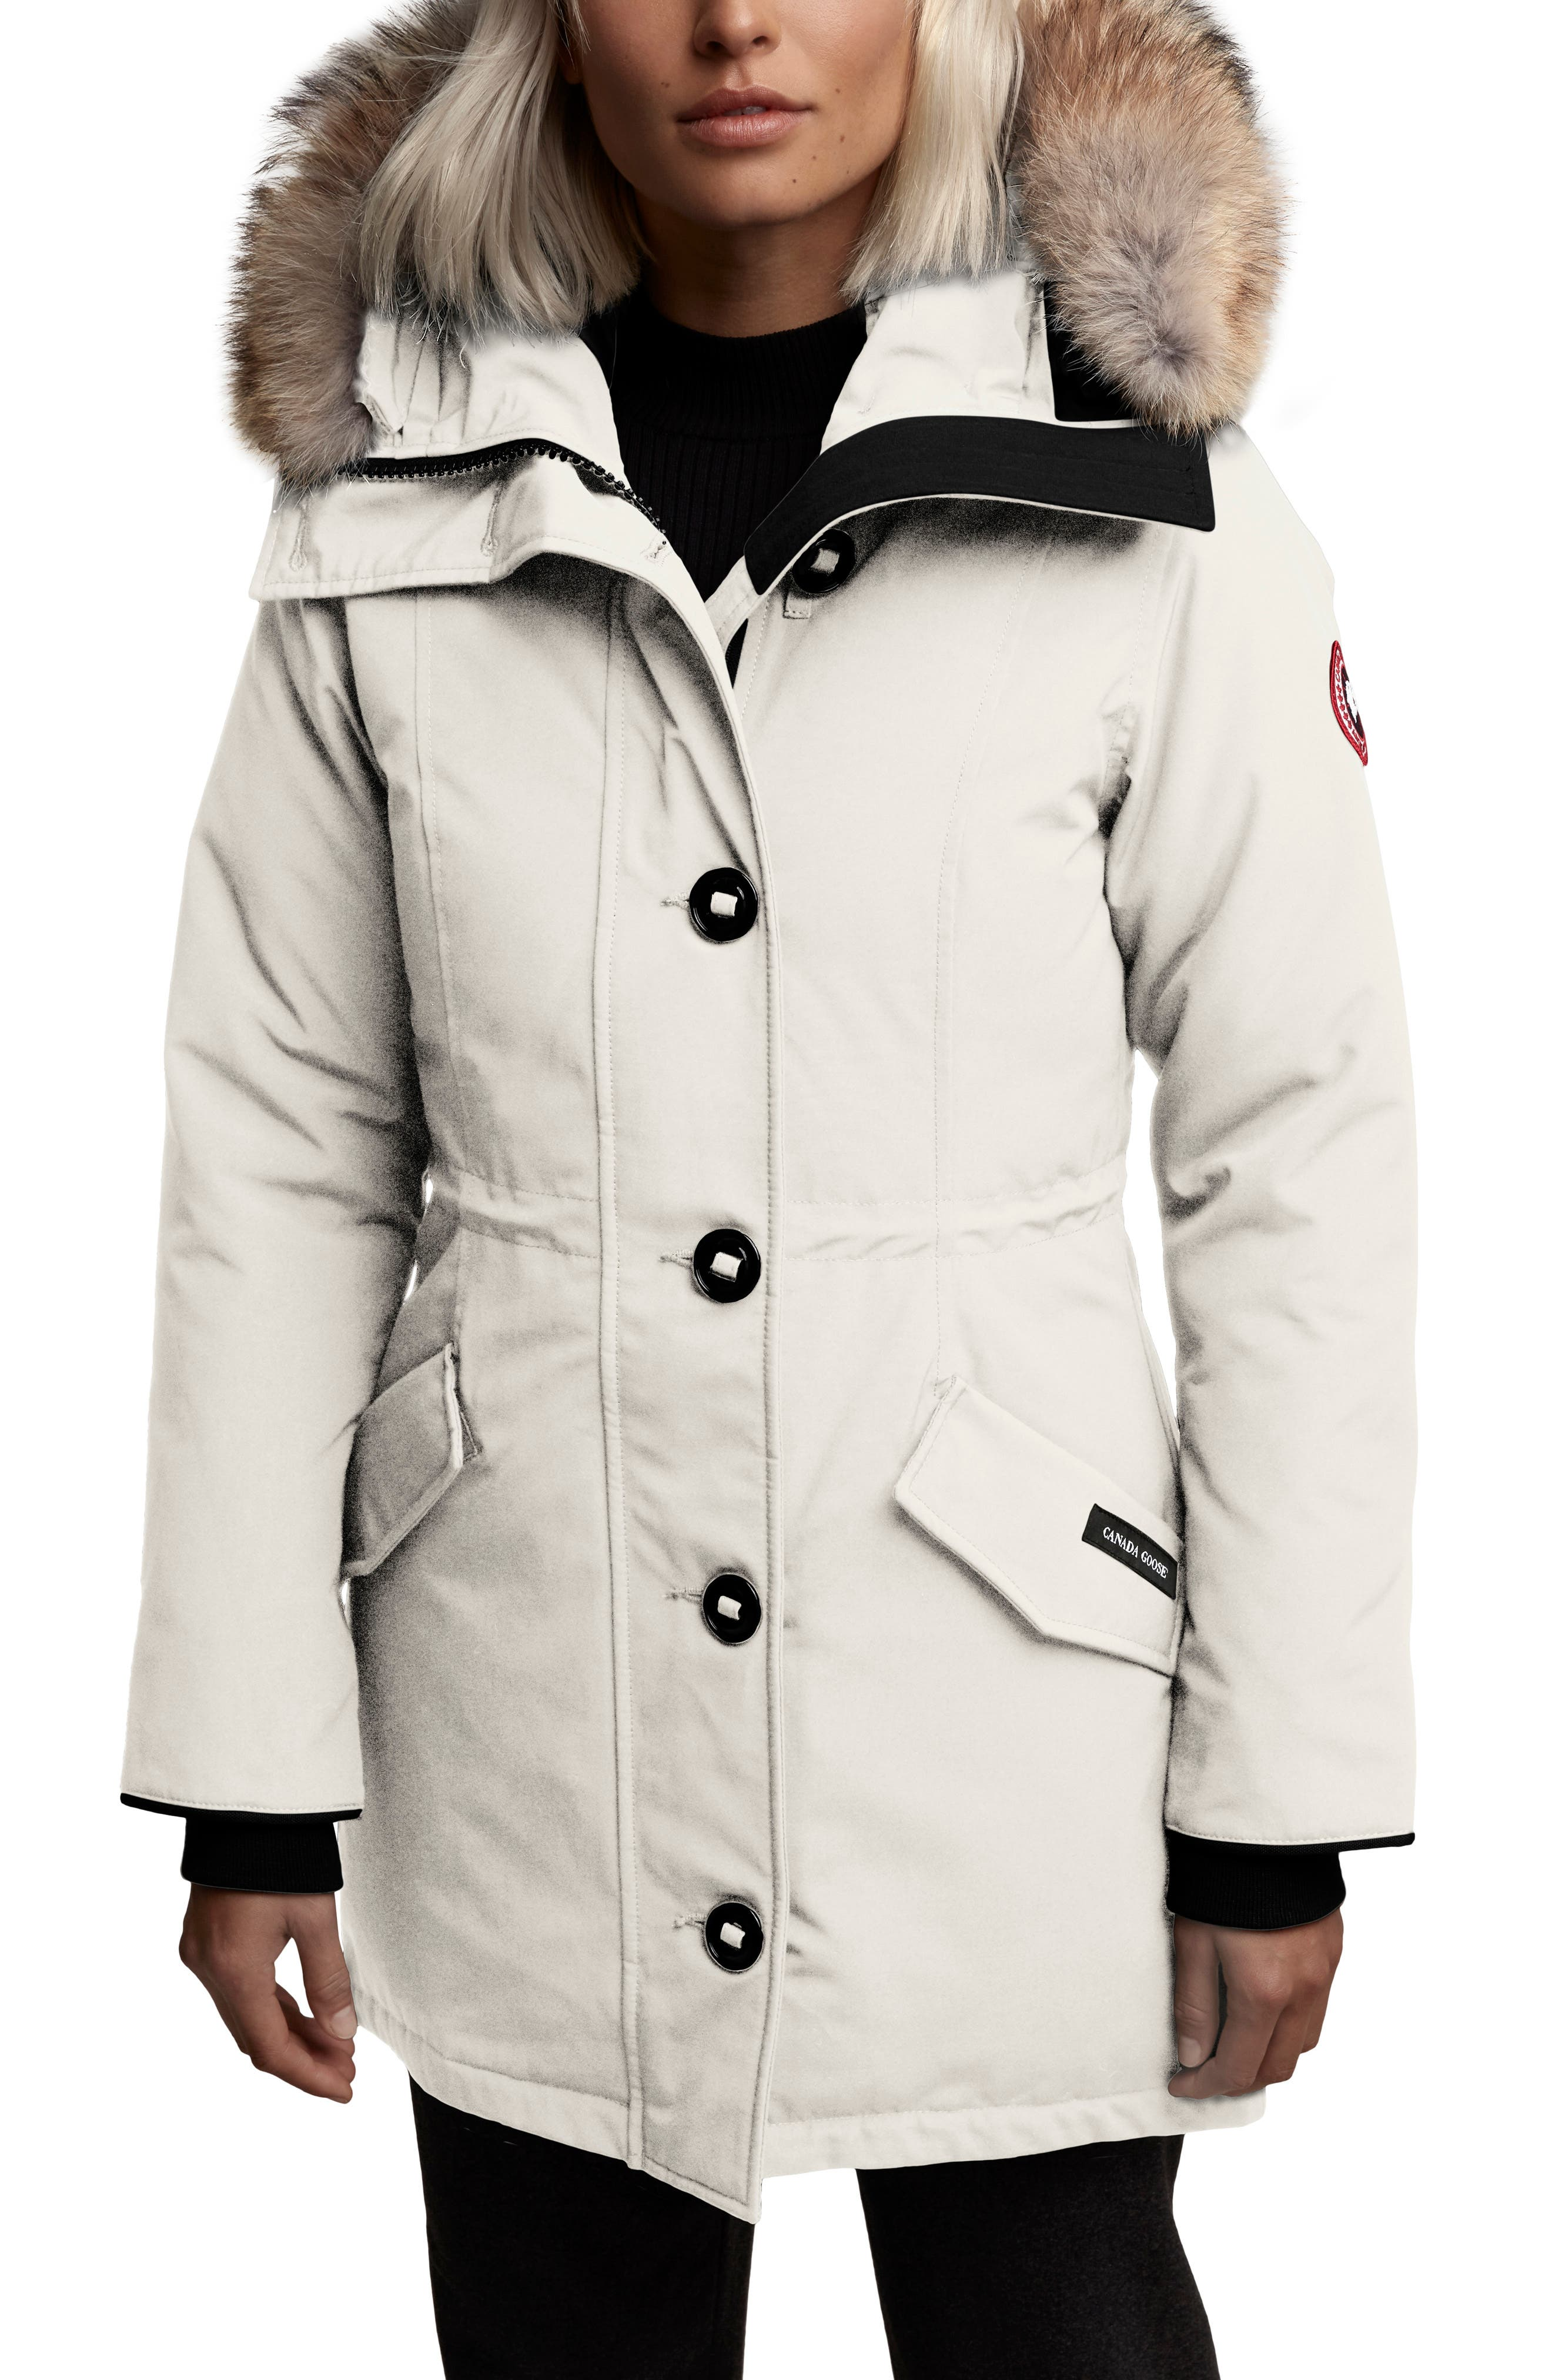 Canada Goose Rossclair Fusion Fit Genuine Coyote Fur Trim Down Parka, (0) - Ivory